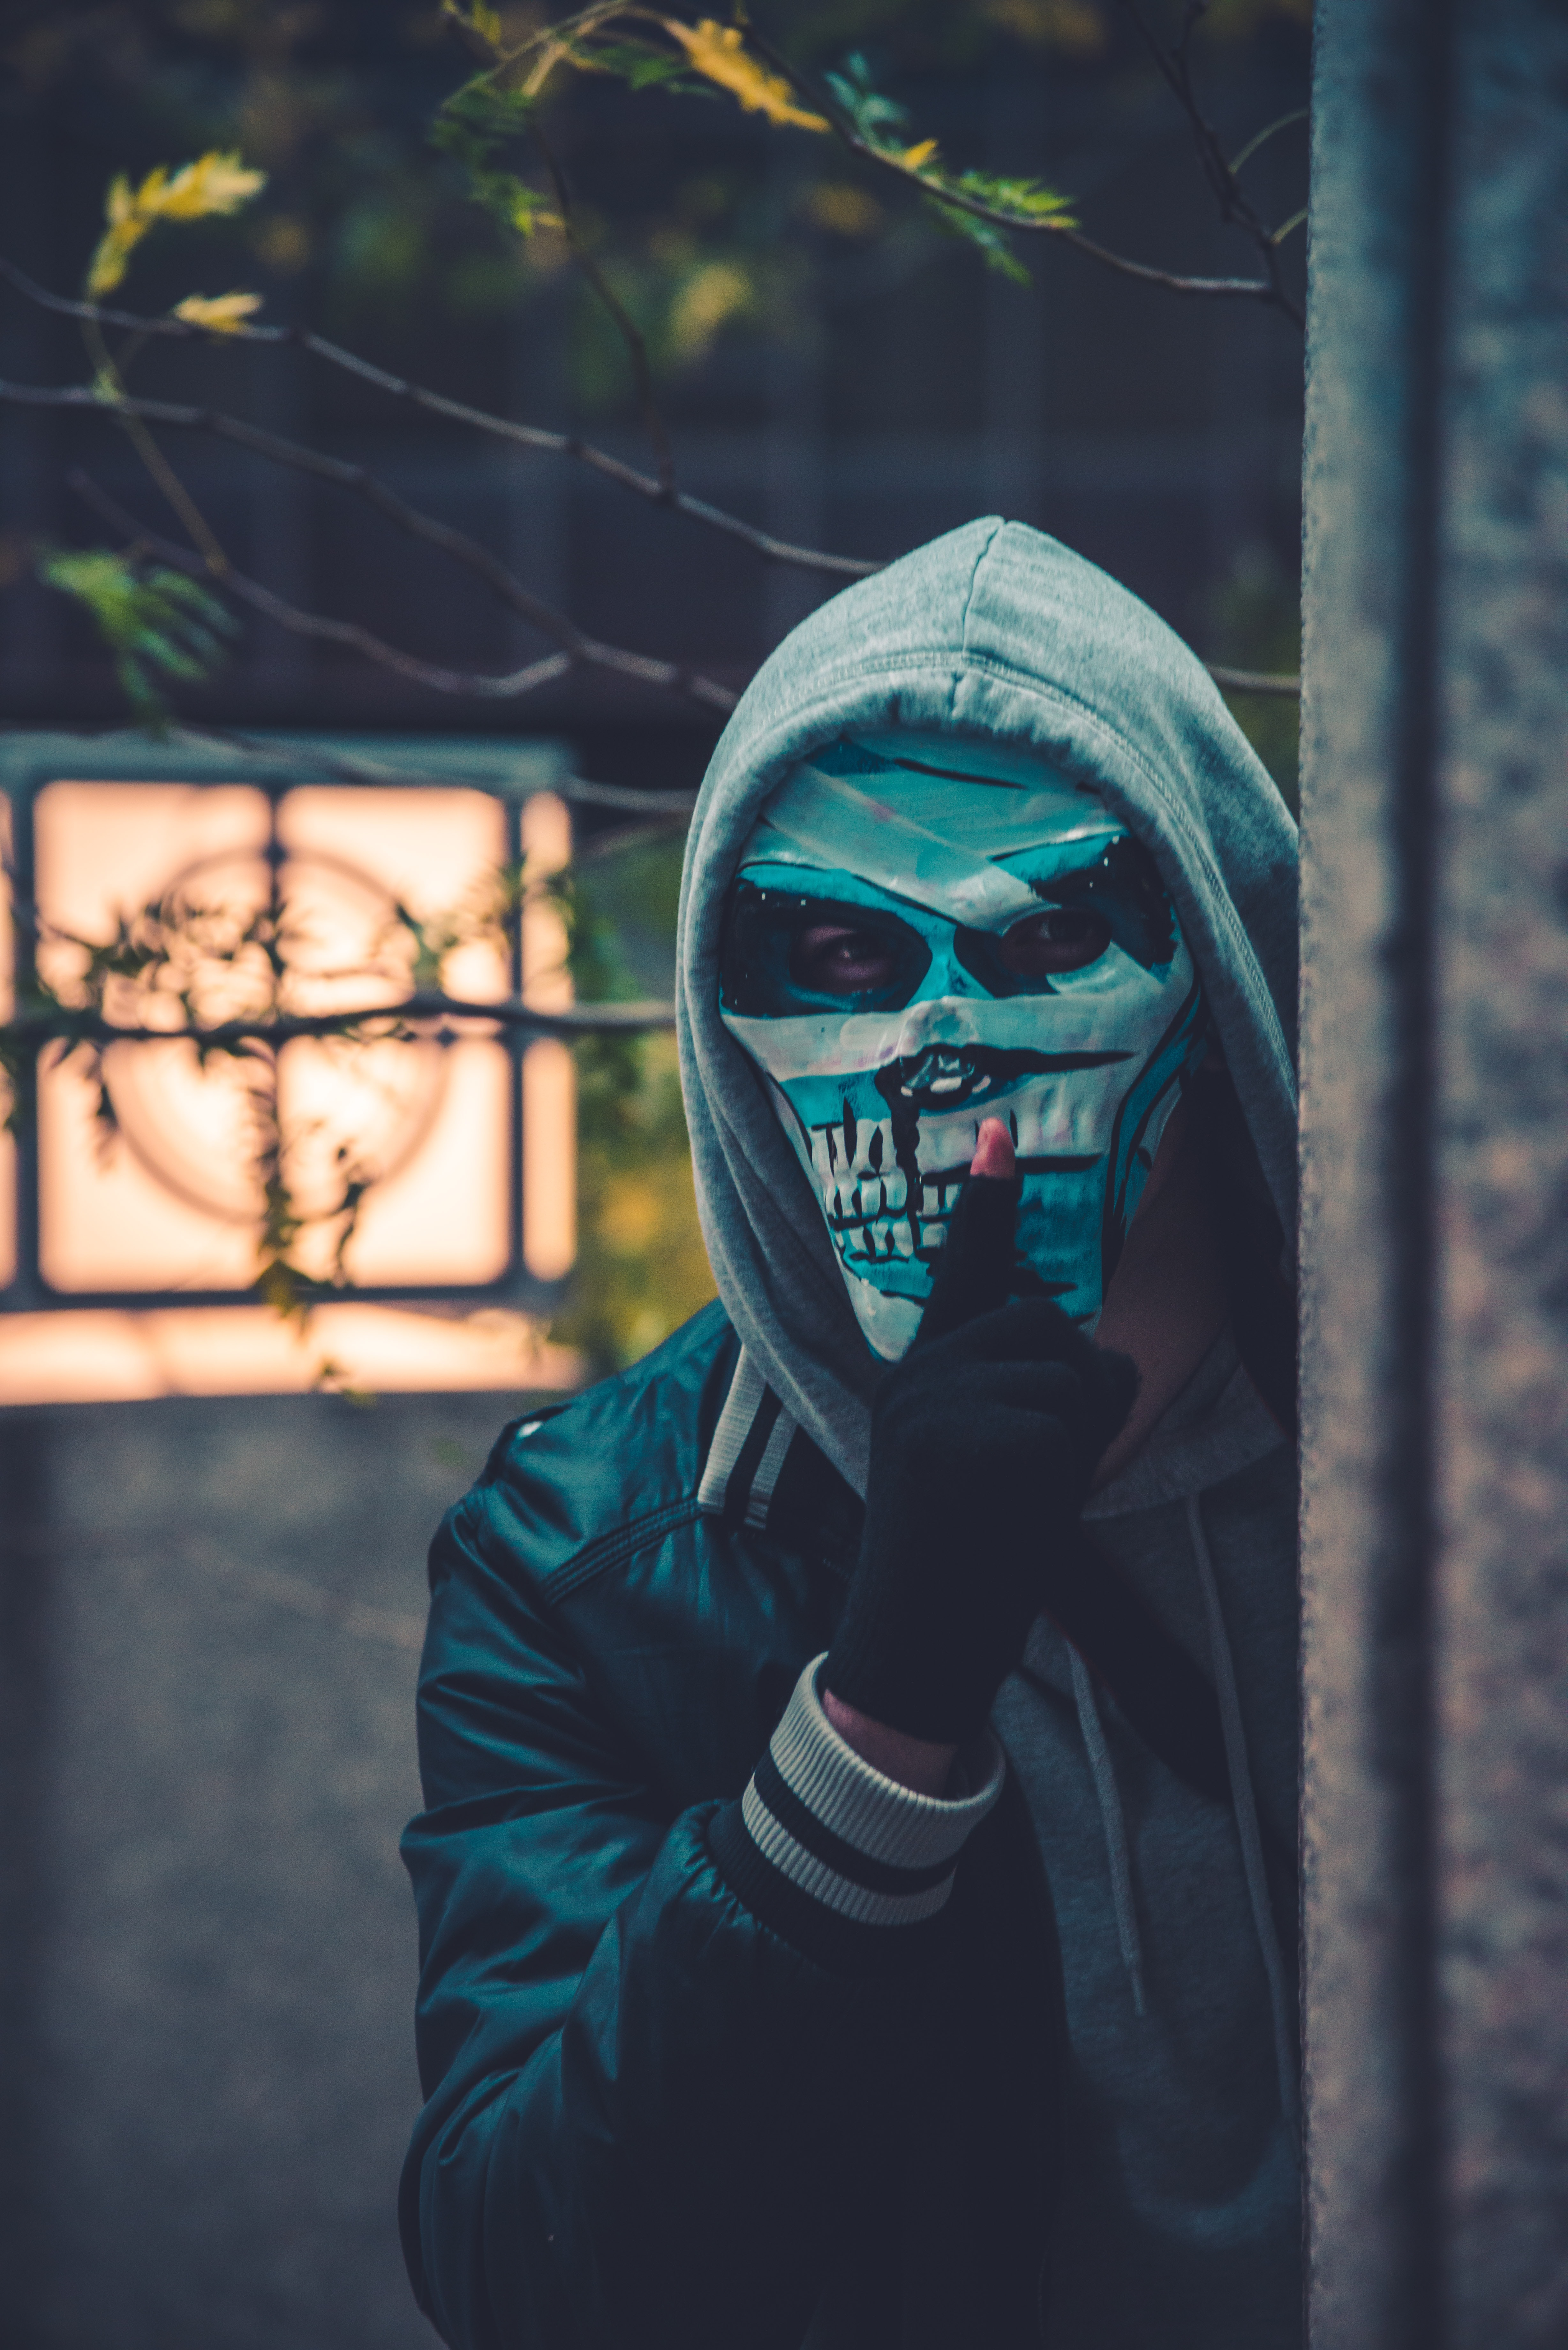 photo of person wearing mask near barbed wire